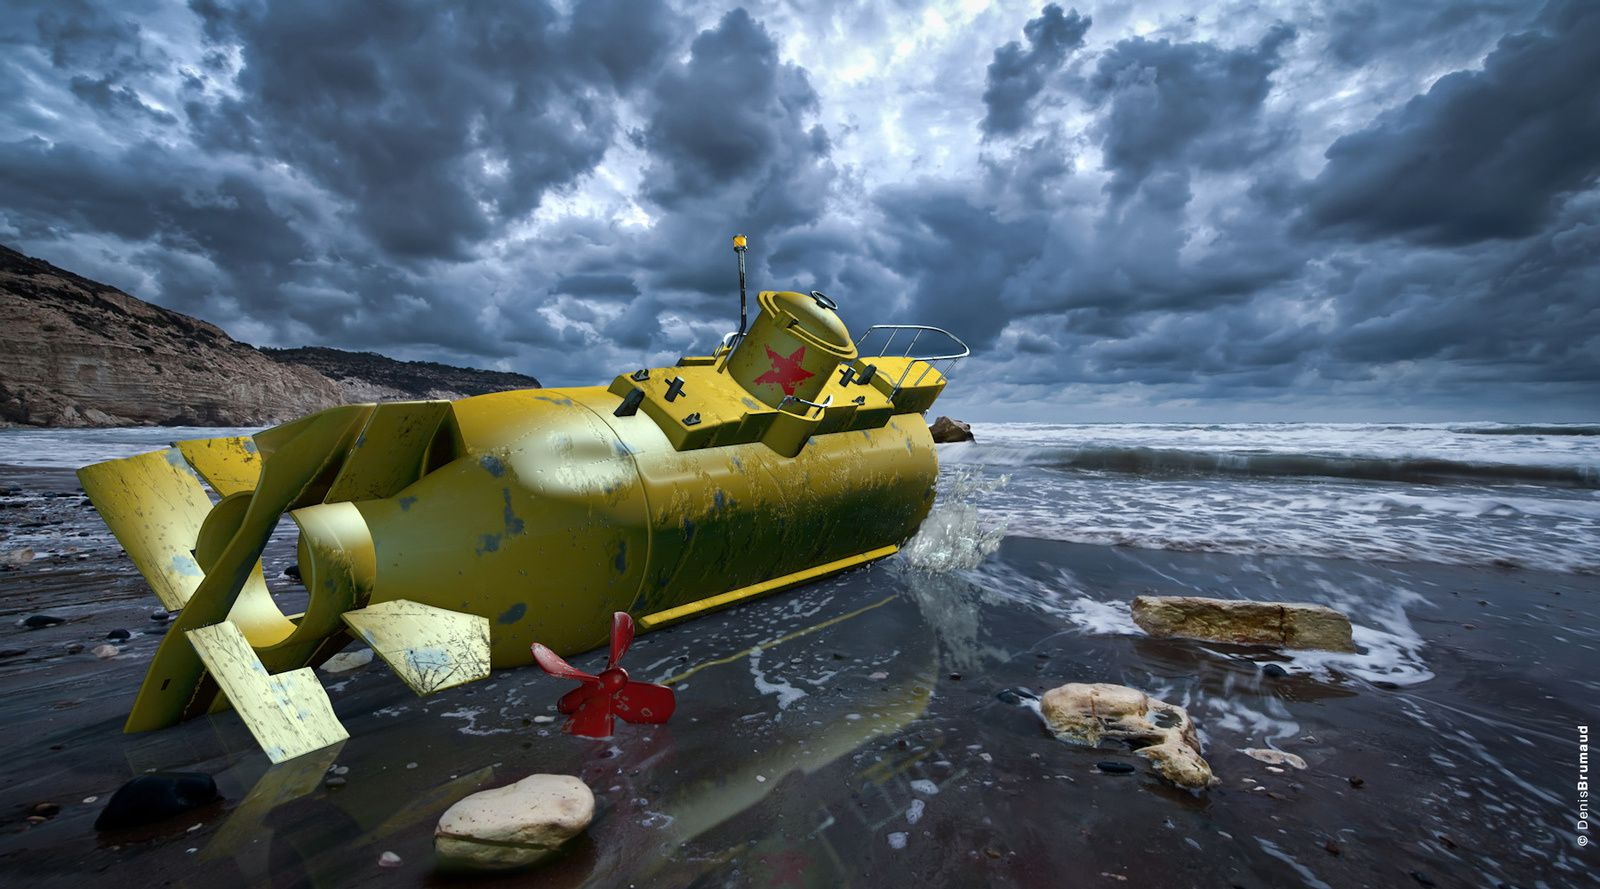 """""""SKY OF BLUE AND SEA OF GREEN IN OUR YELLOW SUBMARINE..."""""""